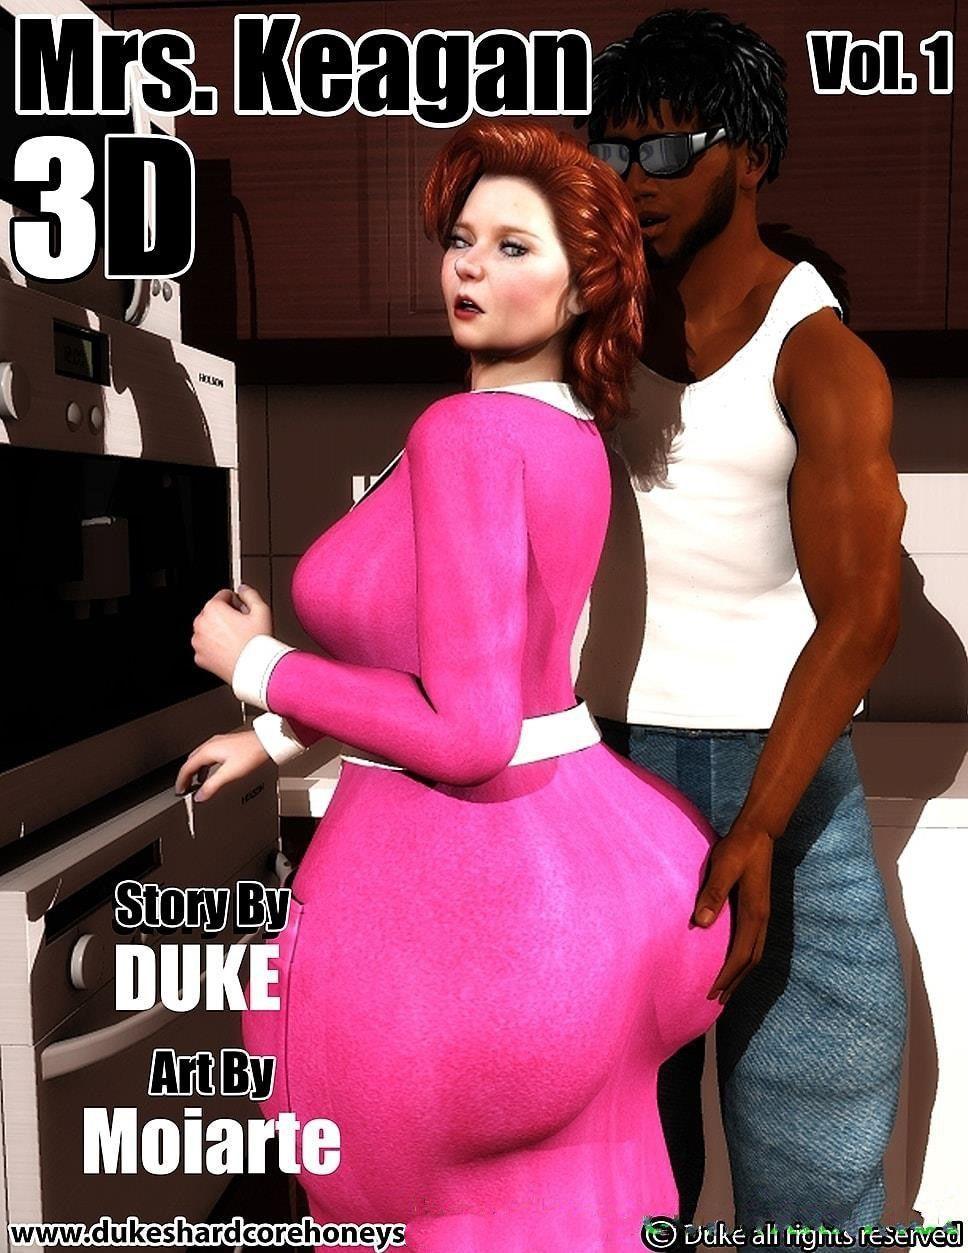 comic adult 3d. ero 3d - cartoon comic sex 3d, porno 3d comics